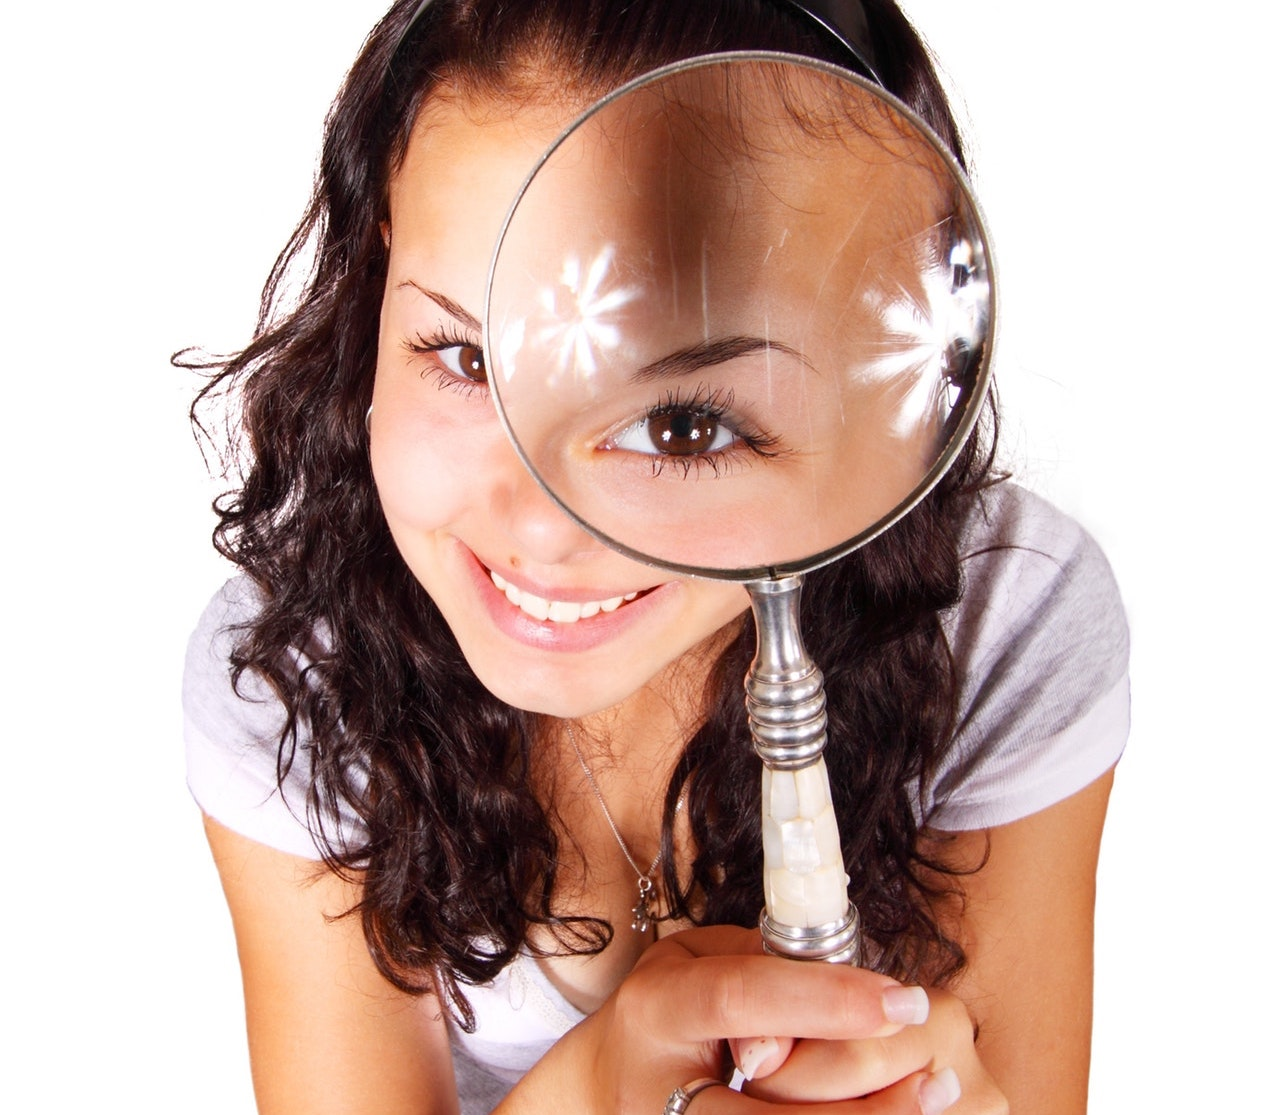 Girl Holding a Magnifier Searching for Quality